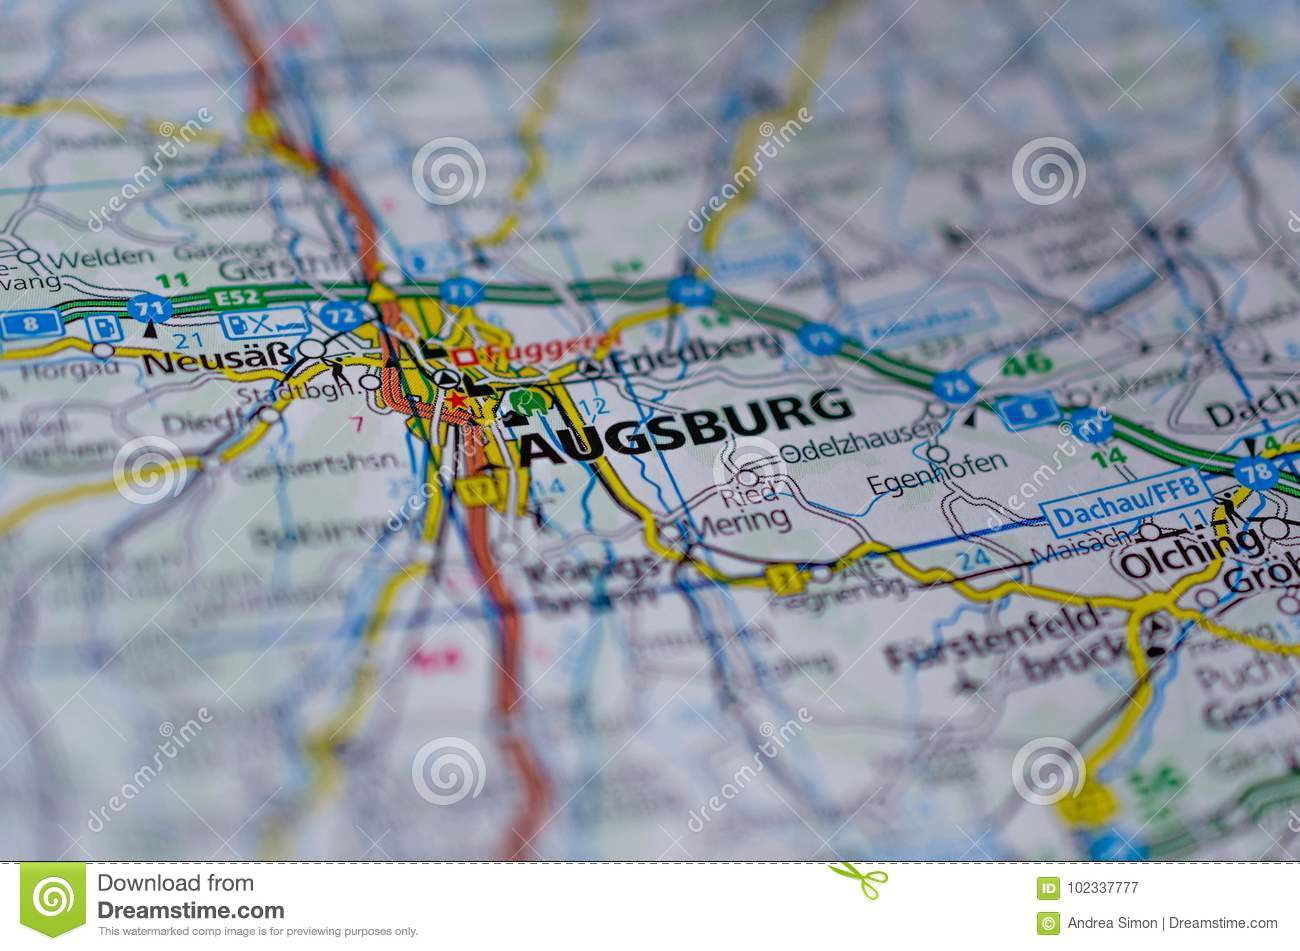 Augsburg on map stock image Image of shot atlas maps 102337777